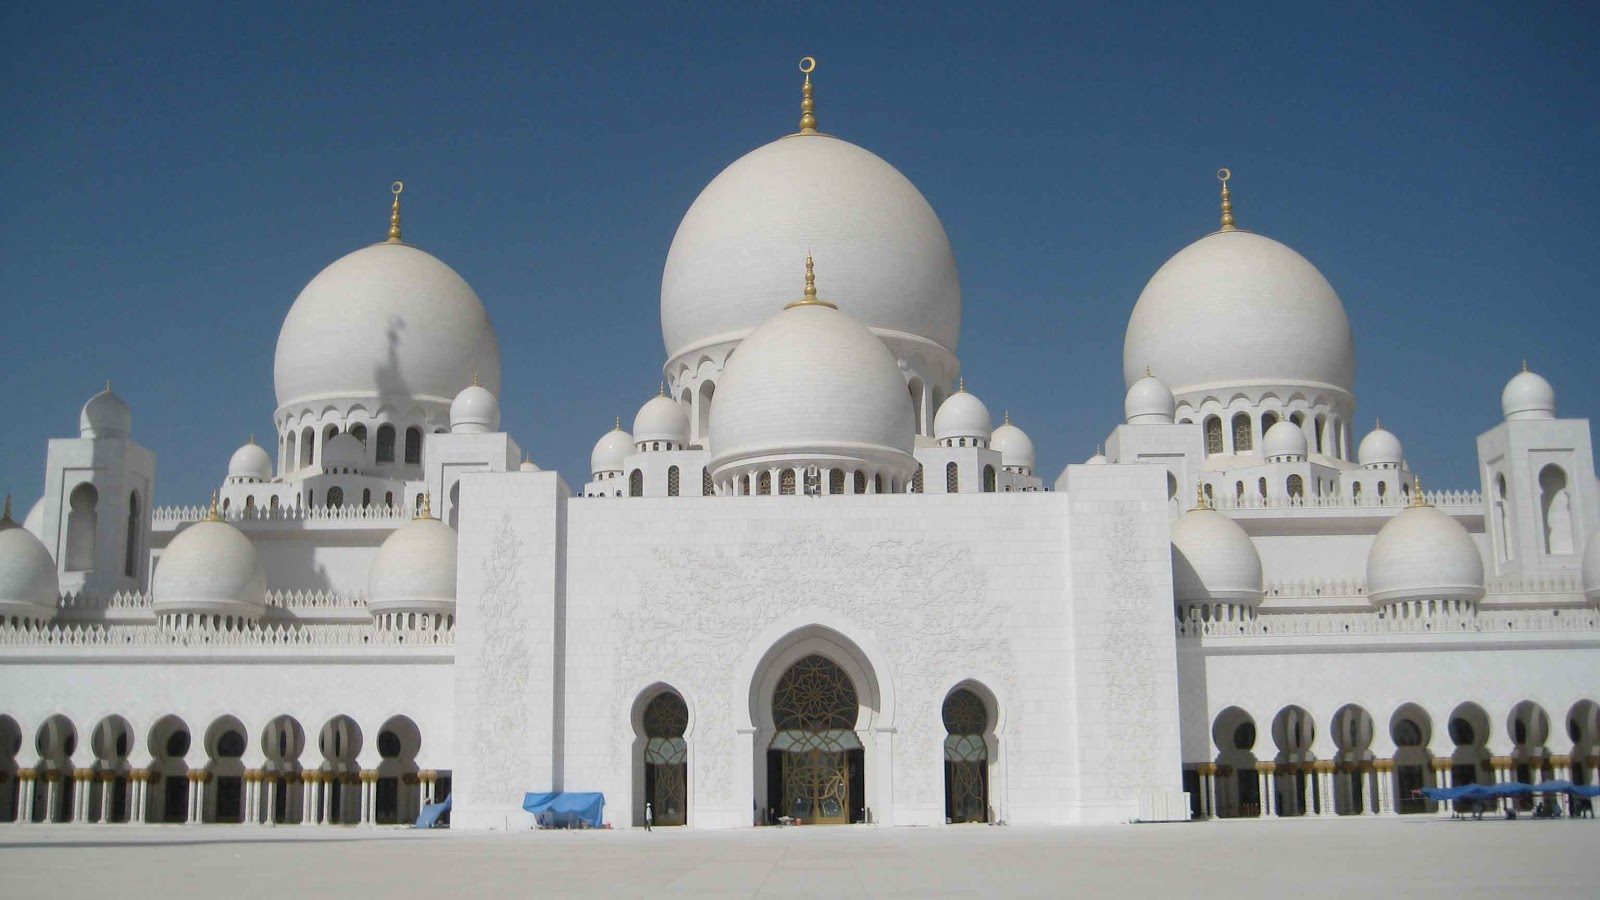 Mosque: COOL IMAGES: Sheikh Zayed Mosque